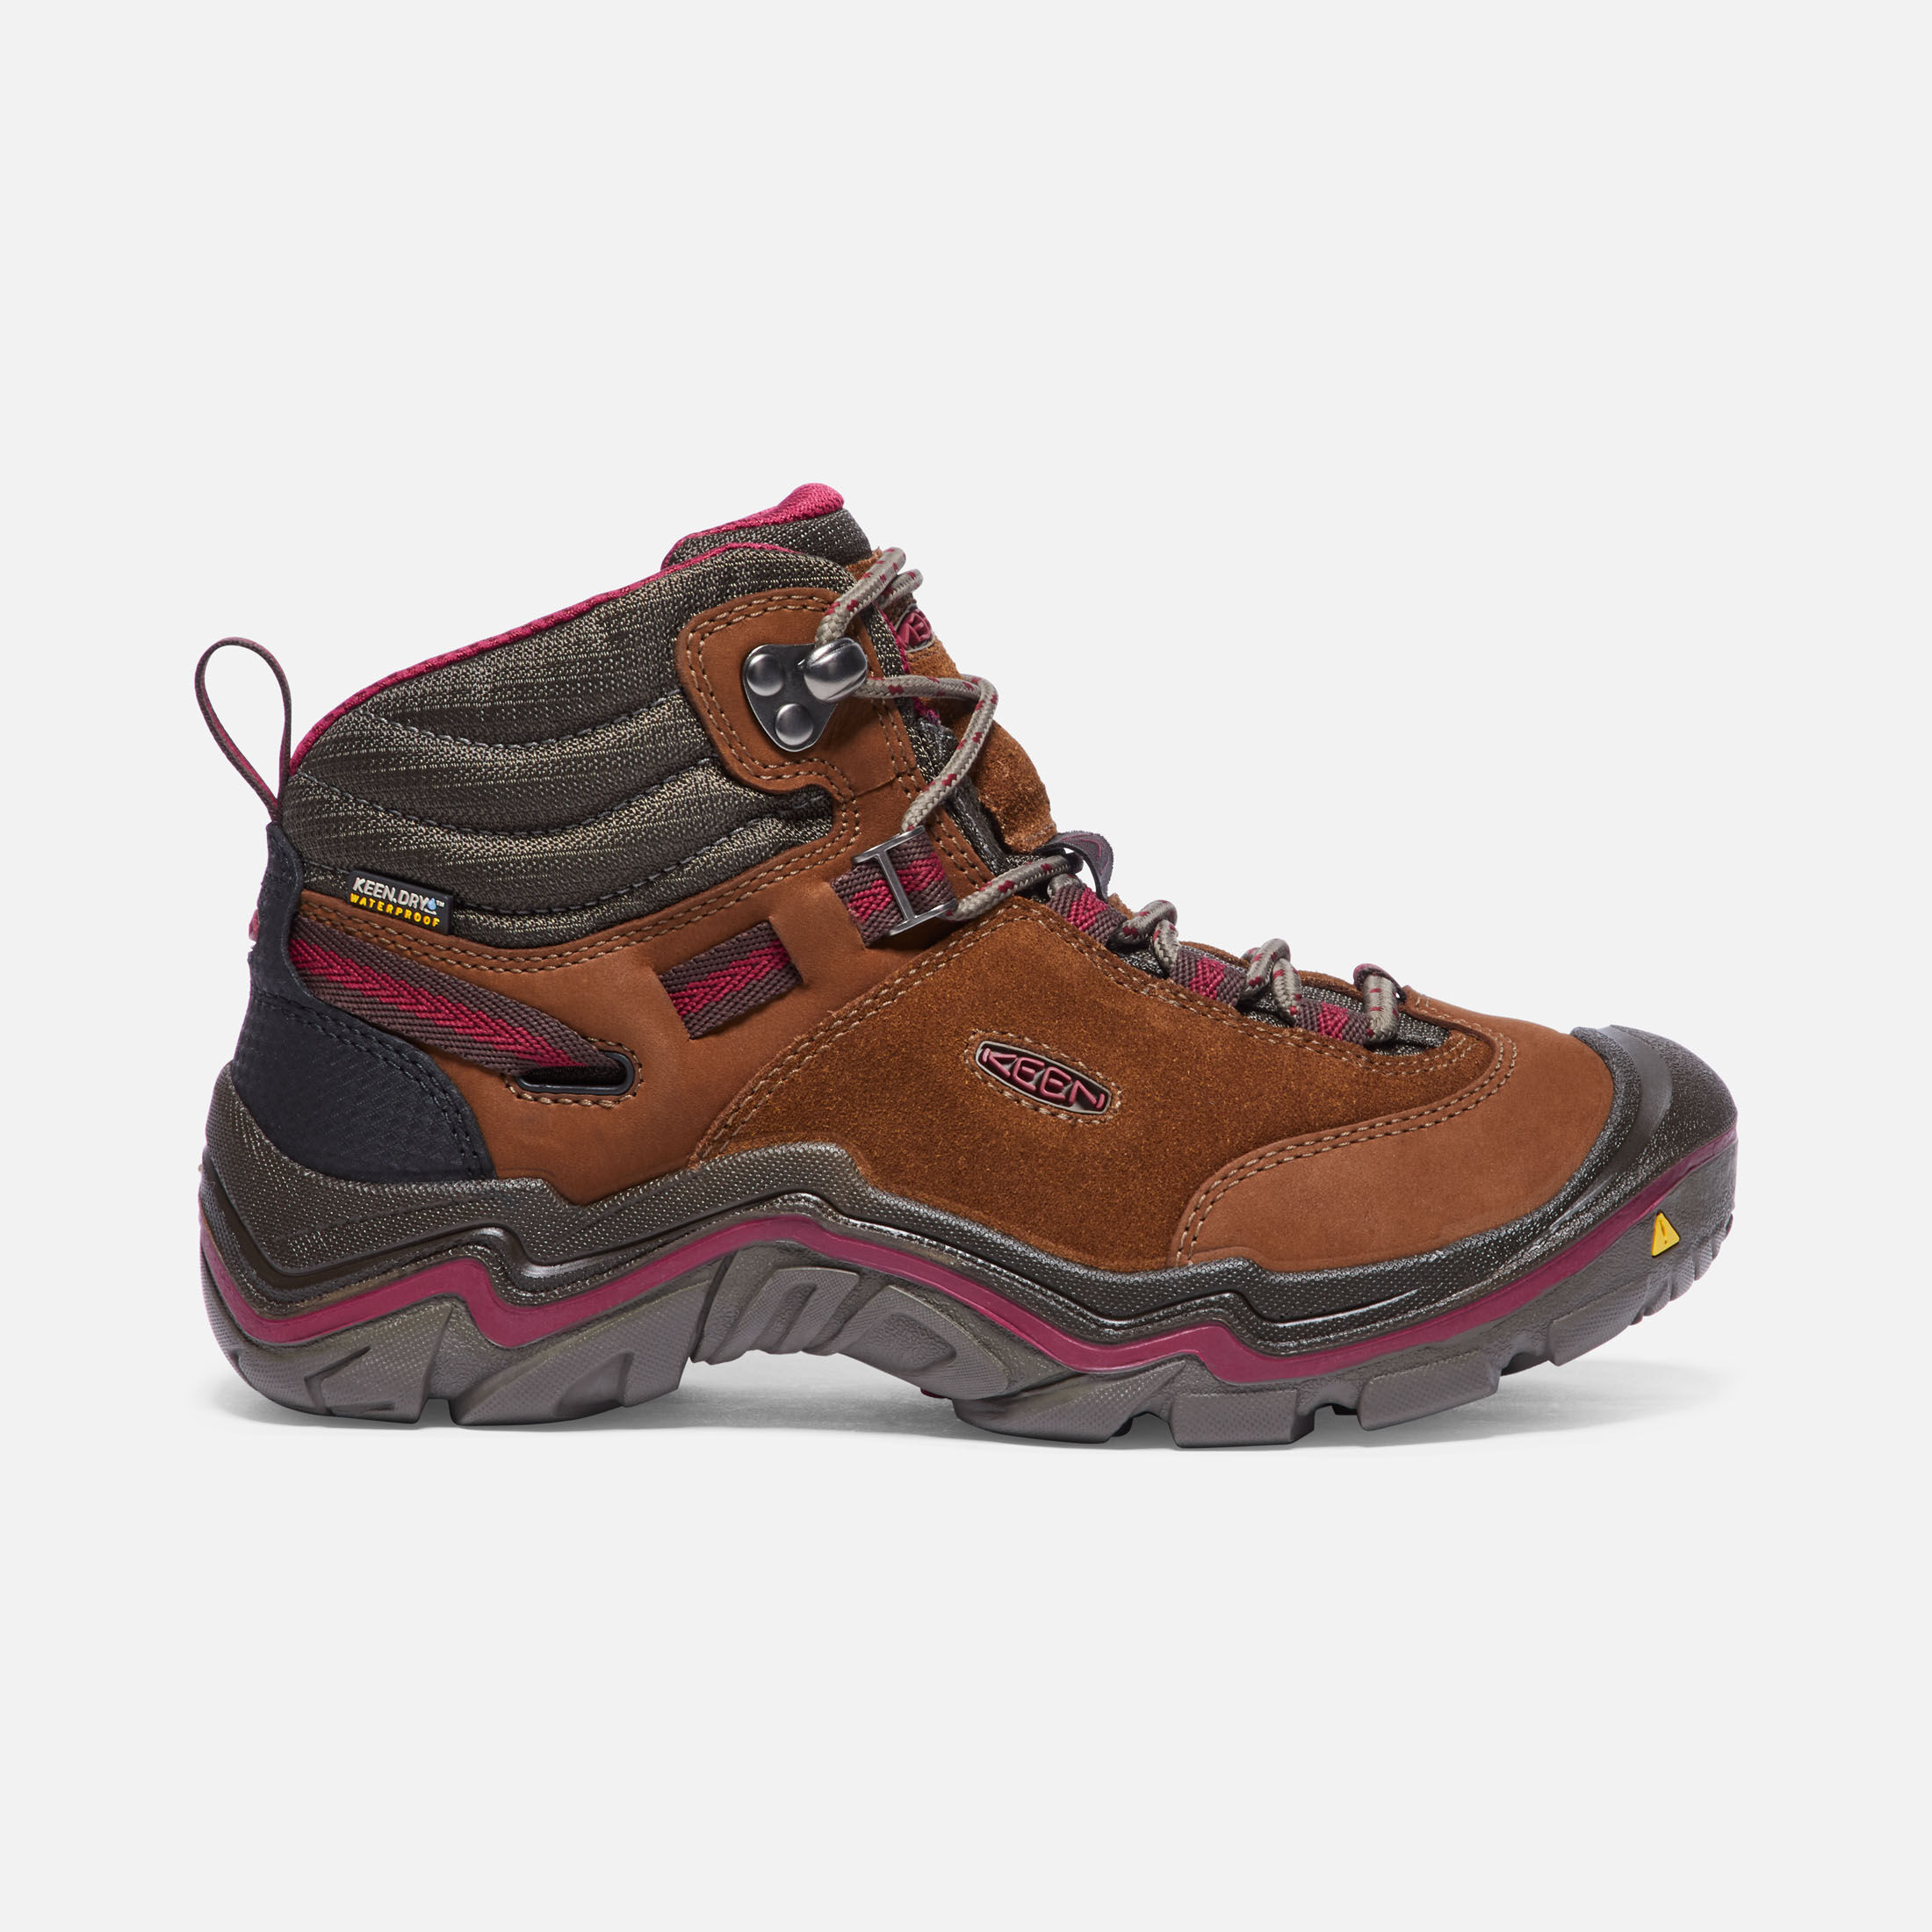 Keen Laurel Mid Waterproof Boot (Women's) cvyyNXr7uz